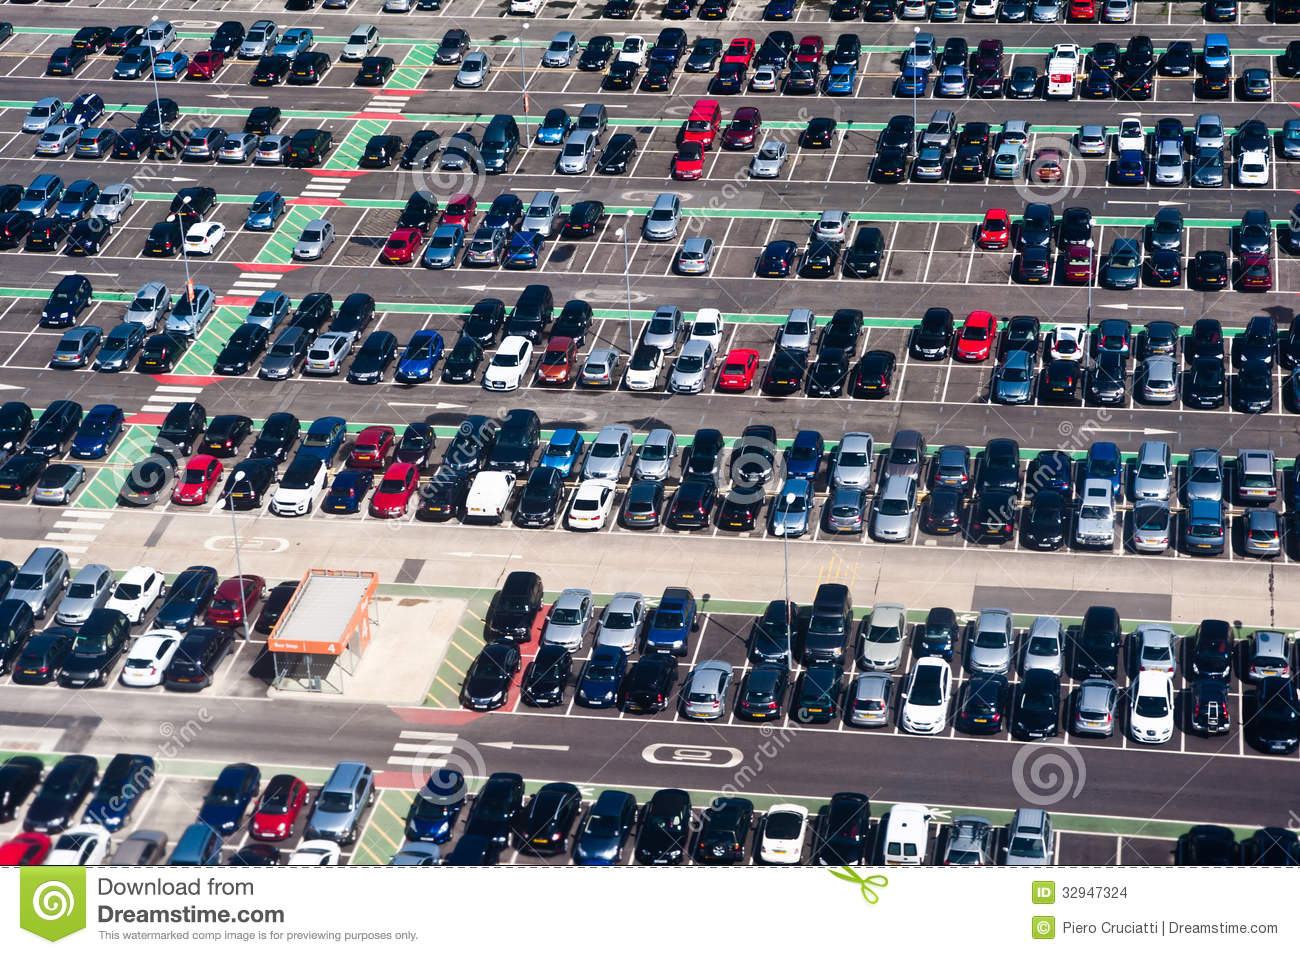 aerial view of car crowded parking lot stock images image 32947324. Black Bedroom Furniture Sets. Home Design Ideas